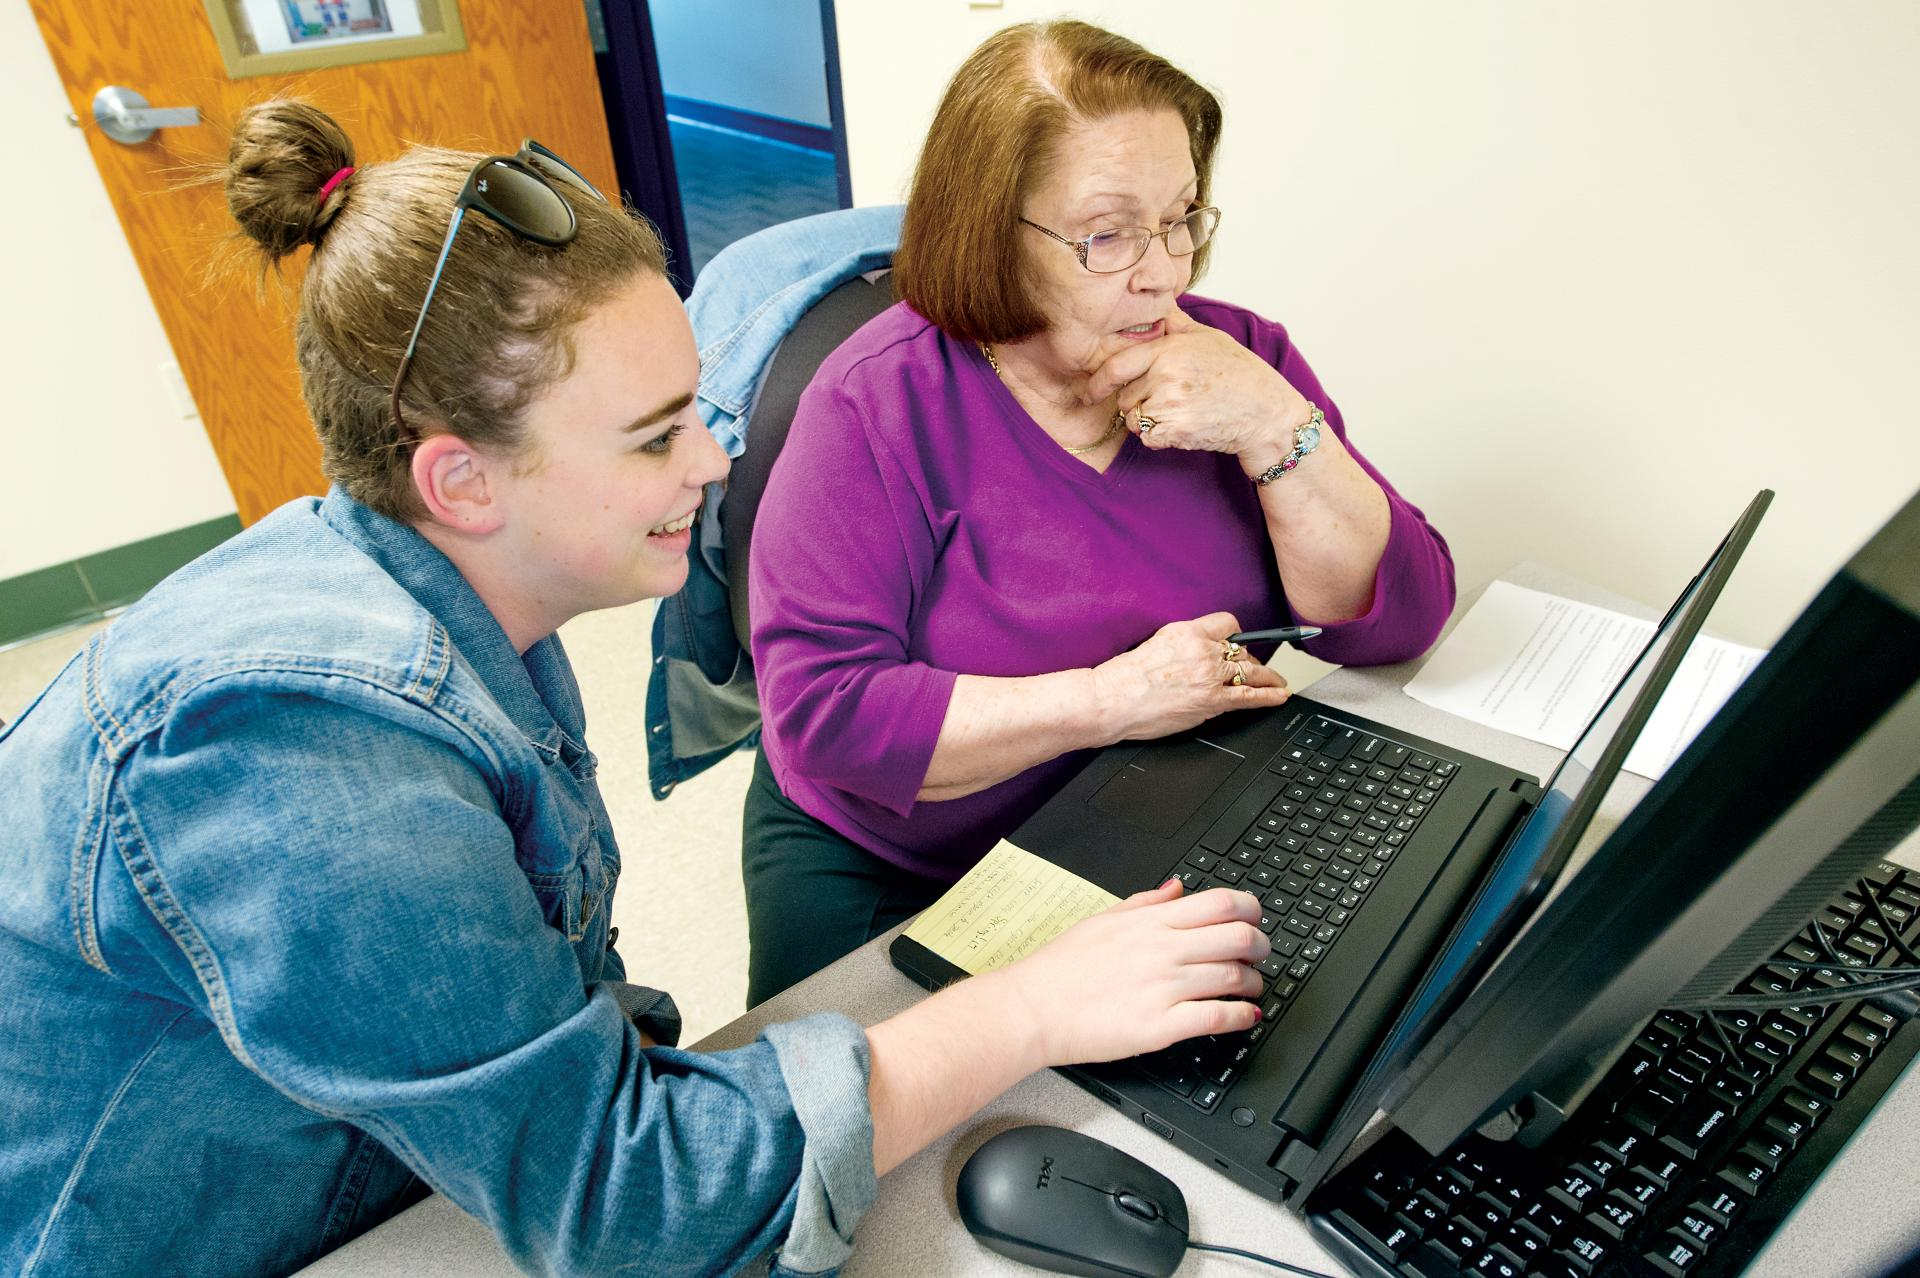 Madison Fortier '19 works with locals as part of the Cyber Seniors program.